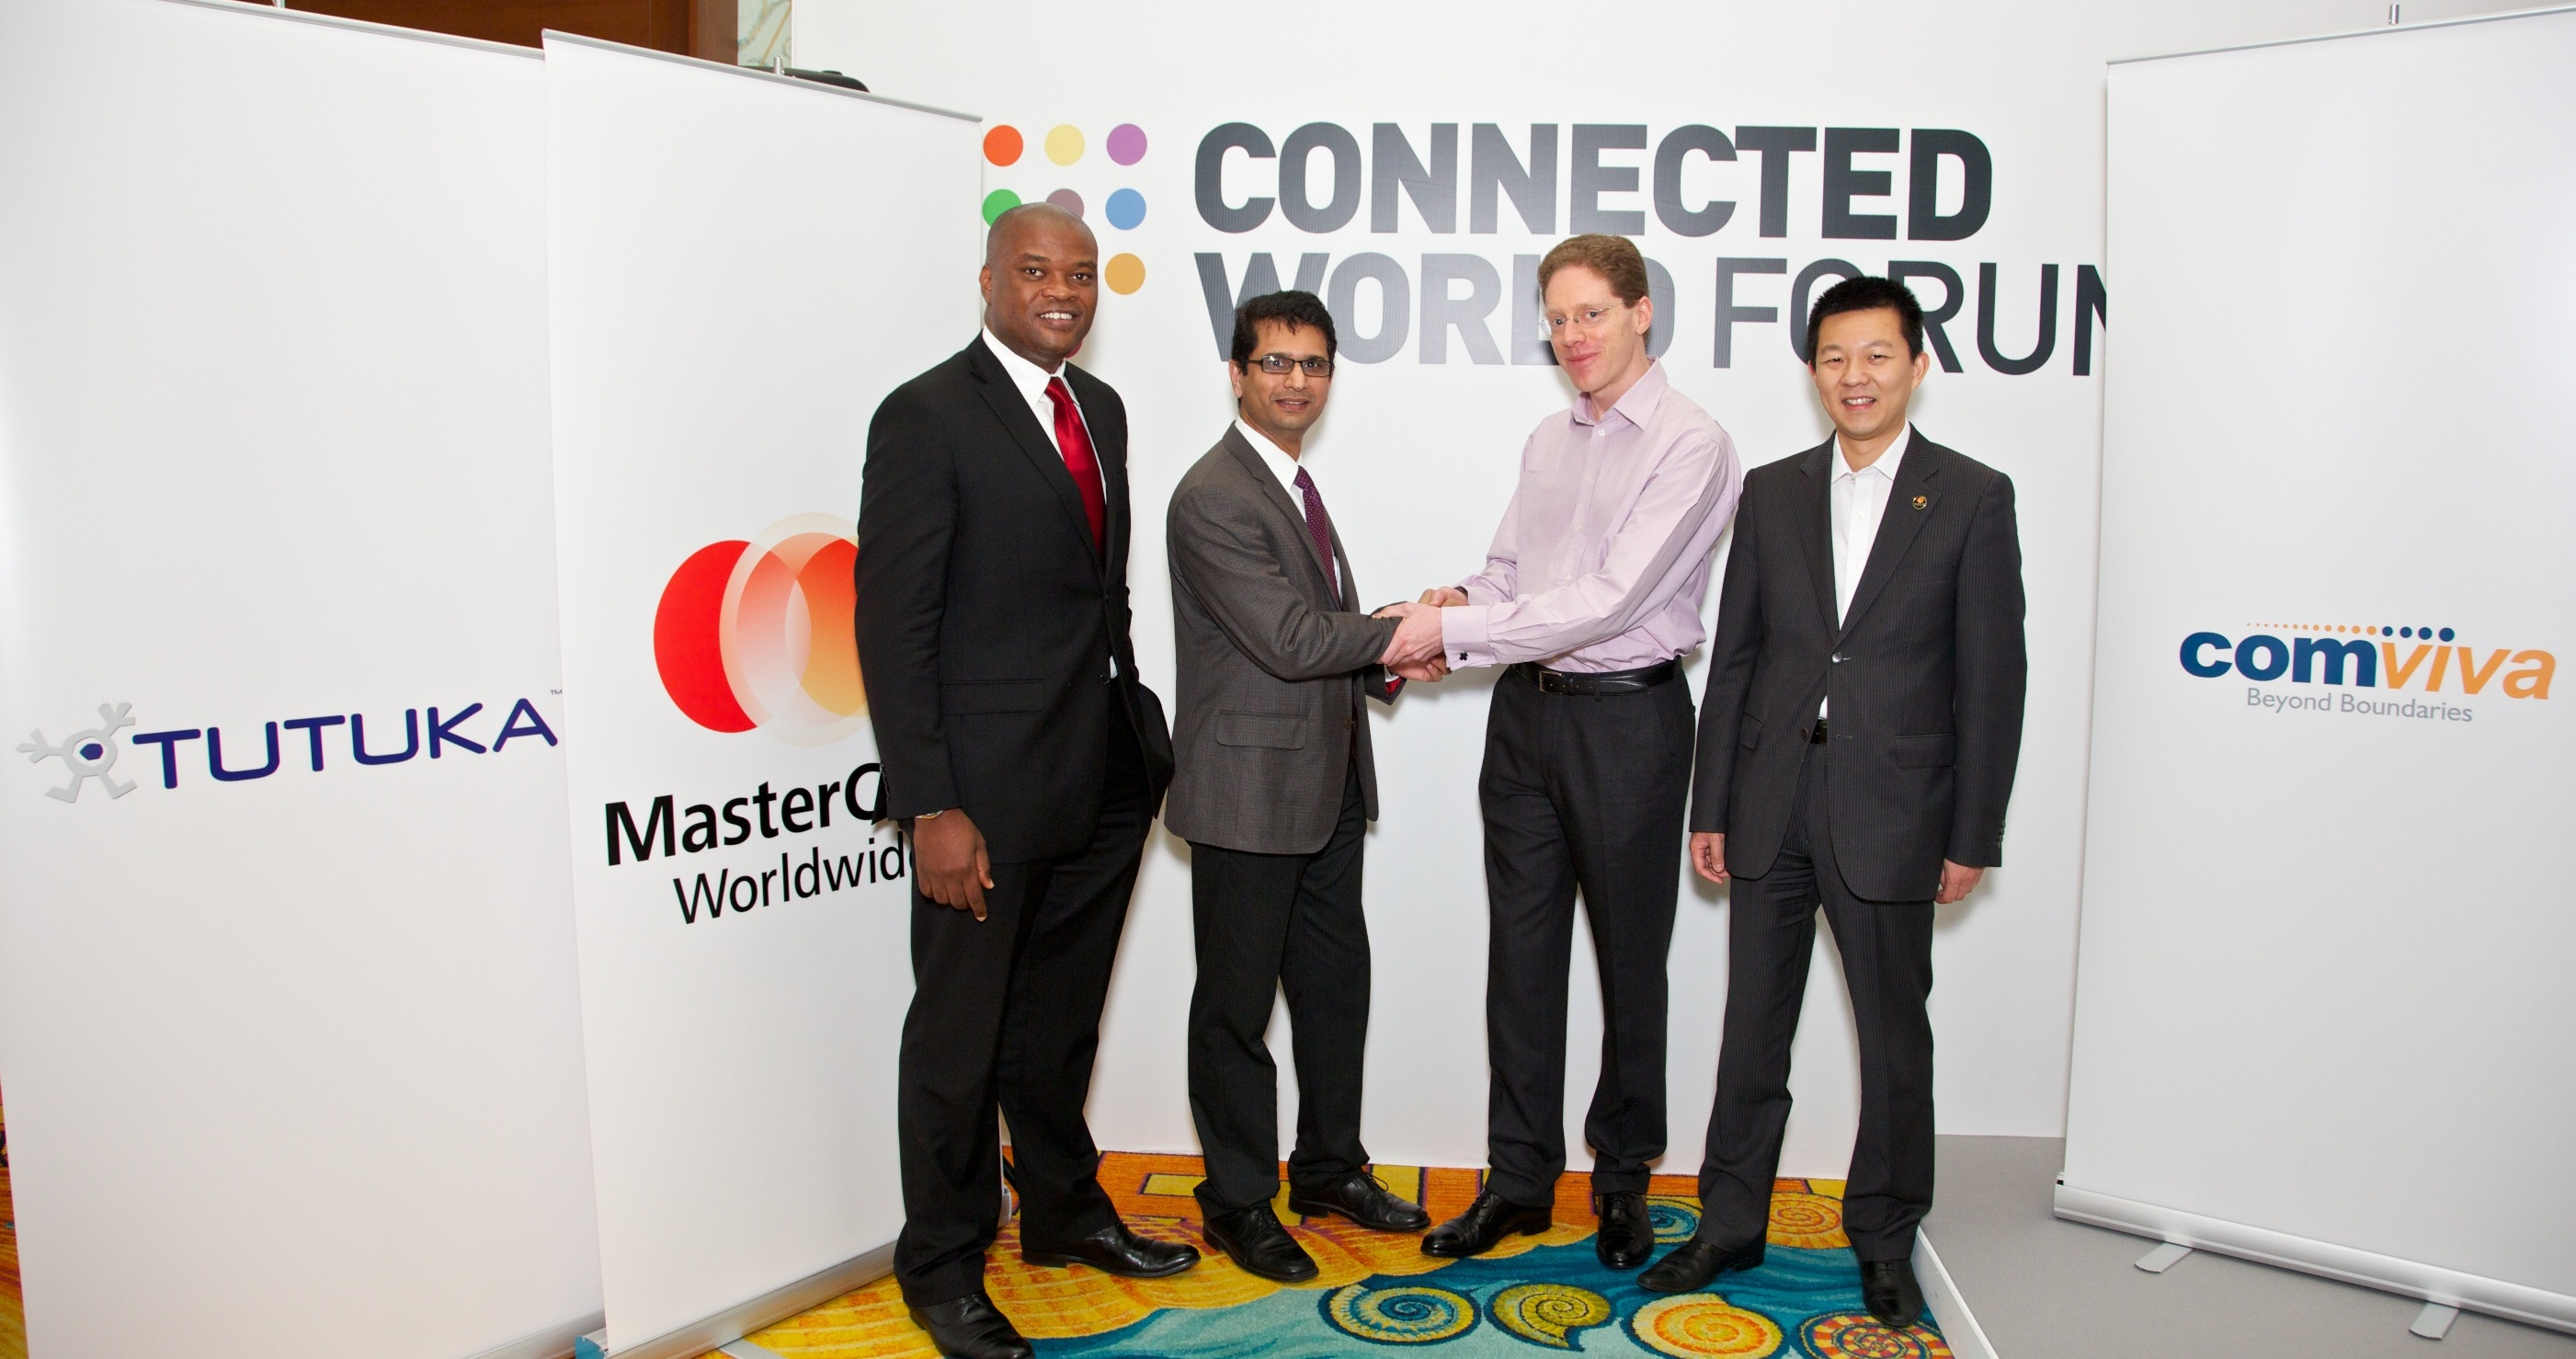 From left to right: Daniel Monehin, division president, Sub Saharan Africa, MasterCard, Worldwide; Seshadri Kulkarni, Head of Global Business Development, Mobile Financial Services, Comviva; Rowan Brewer, CEO, Tutuka; and Mung-Ki Woo, global executive mobile, MasterCard, Worldwide